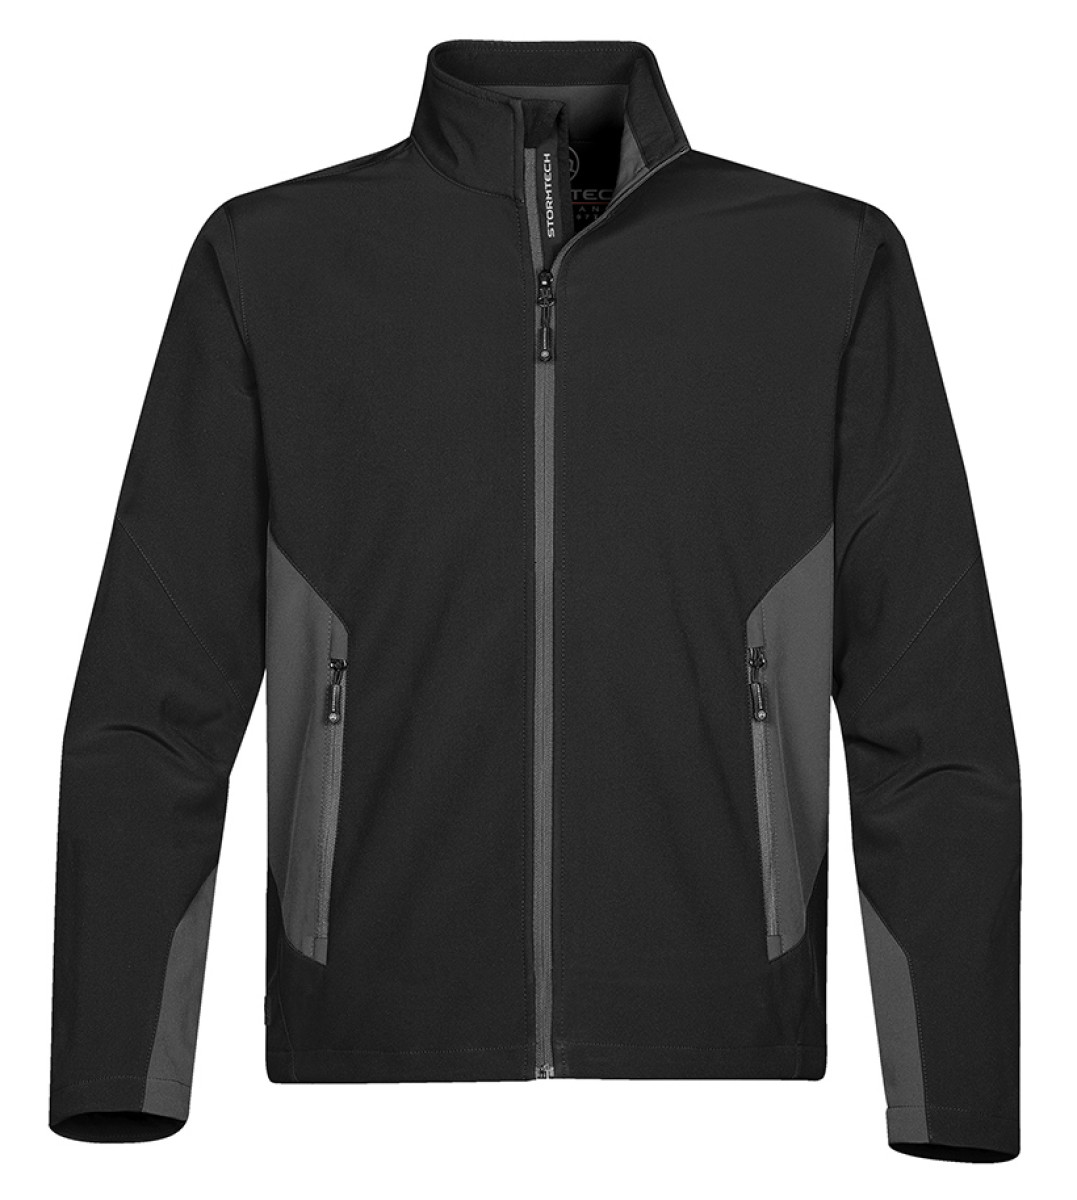 Stormtech Men's Pulse Softshell